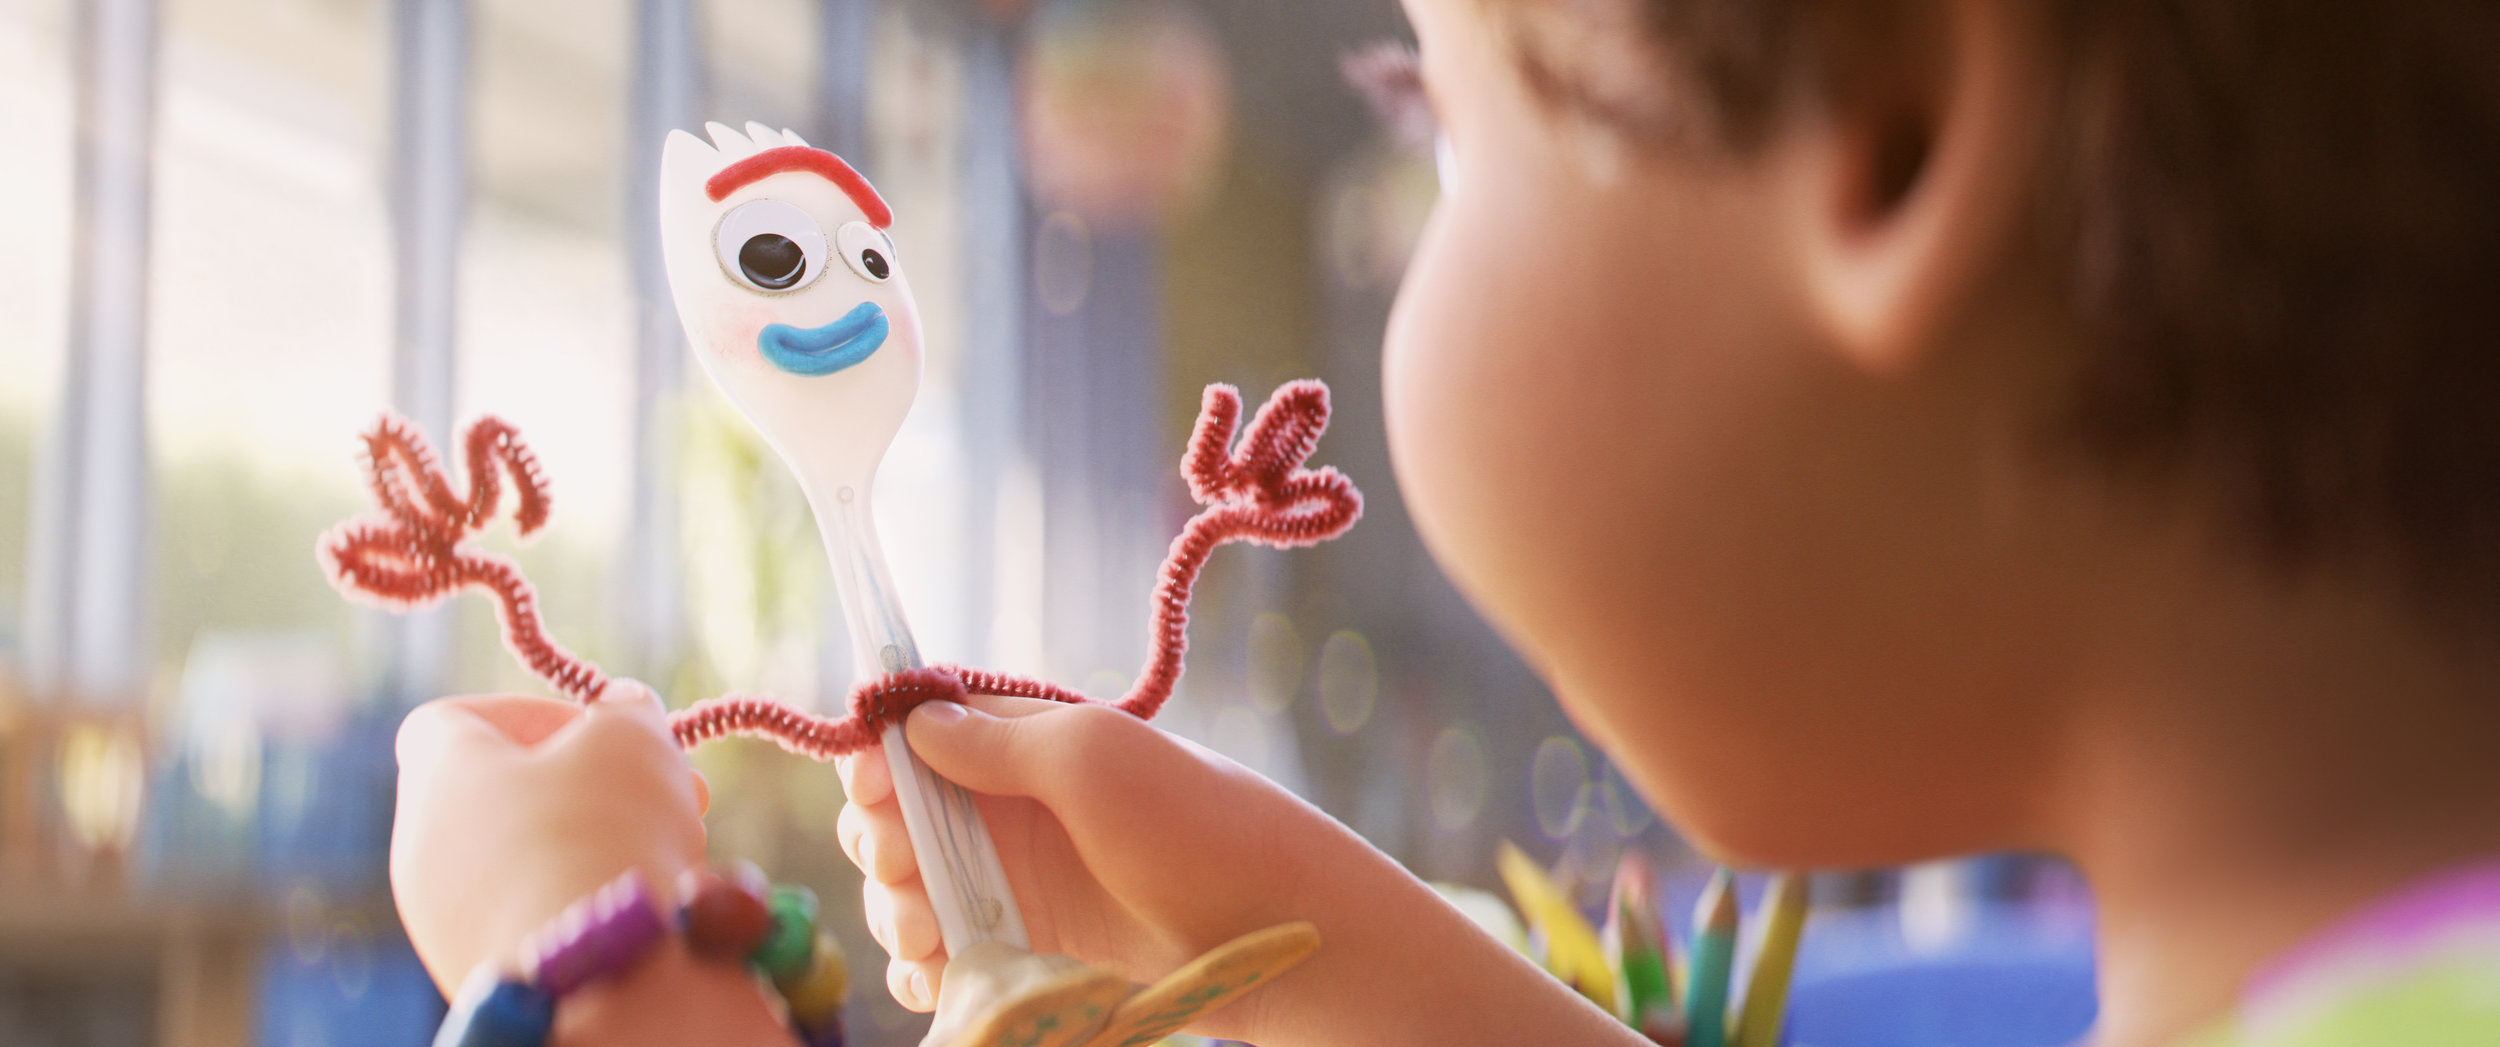 Forky (Tony Hale), the talking spork, has identity issues in Toy Story 4